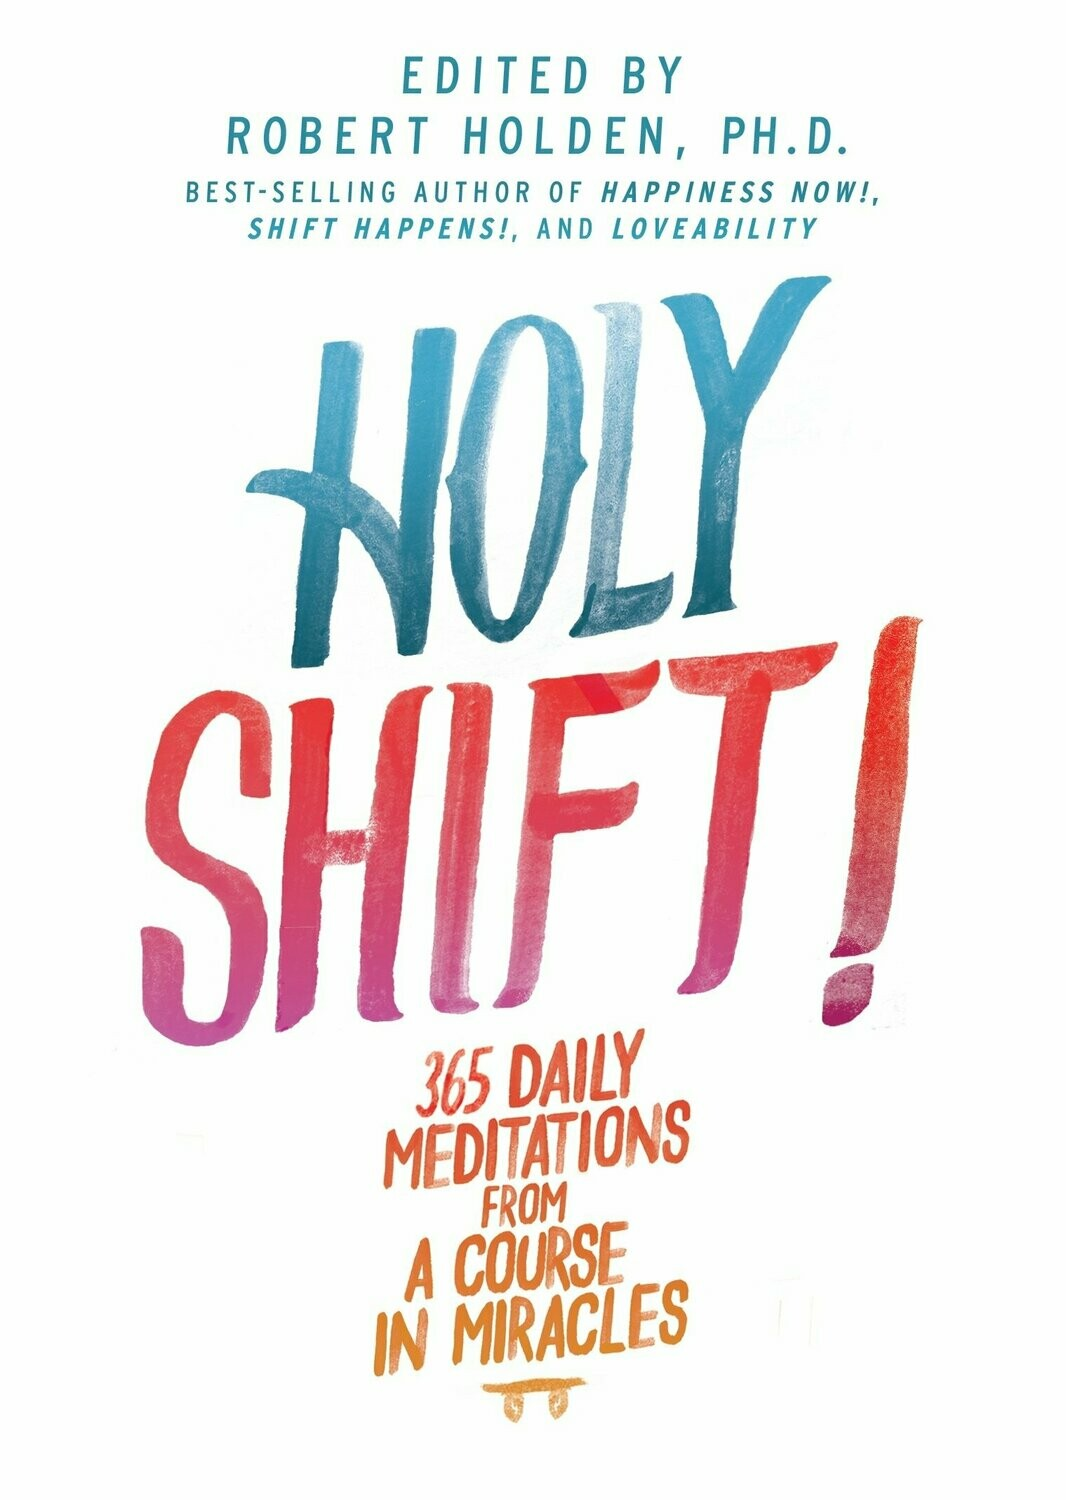 Holy Shift! 365 Daily Meditations From A Course In Miracles